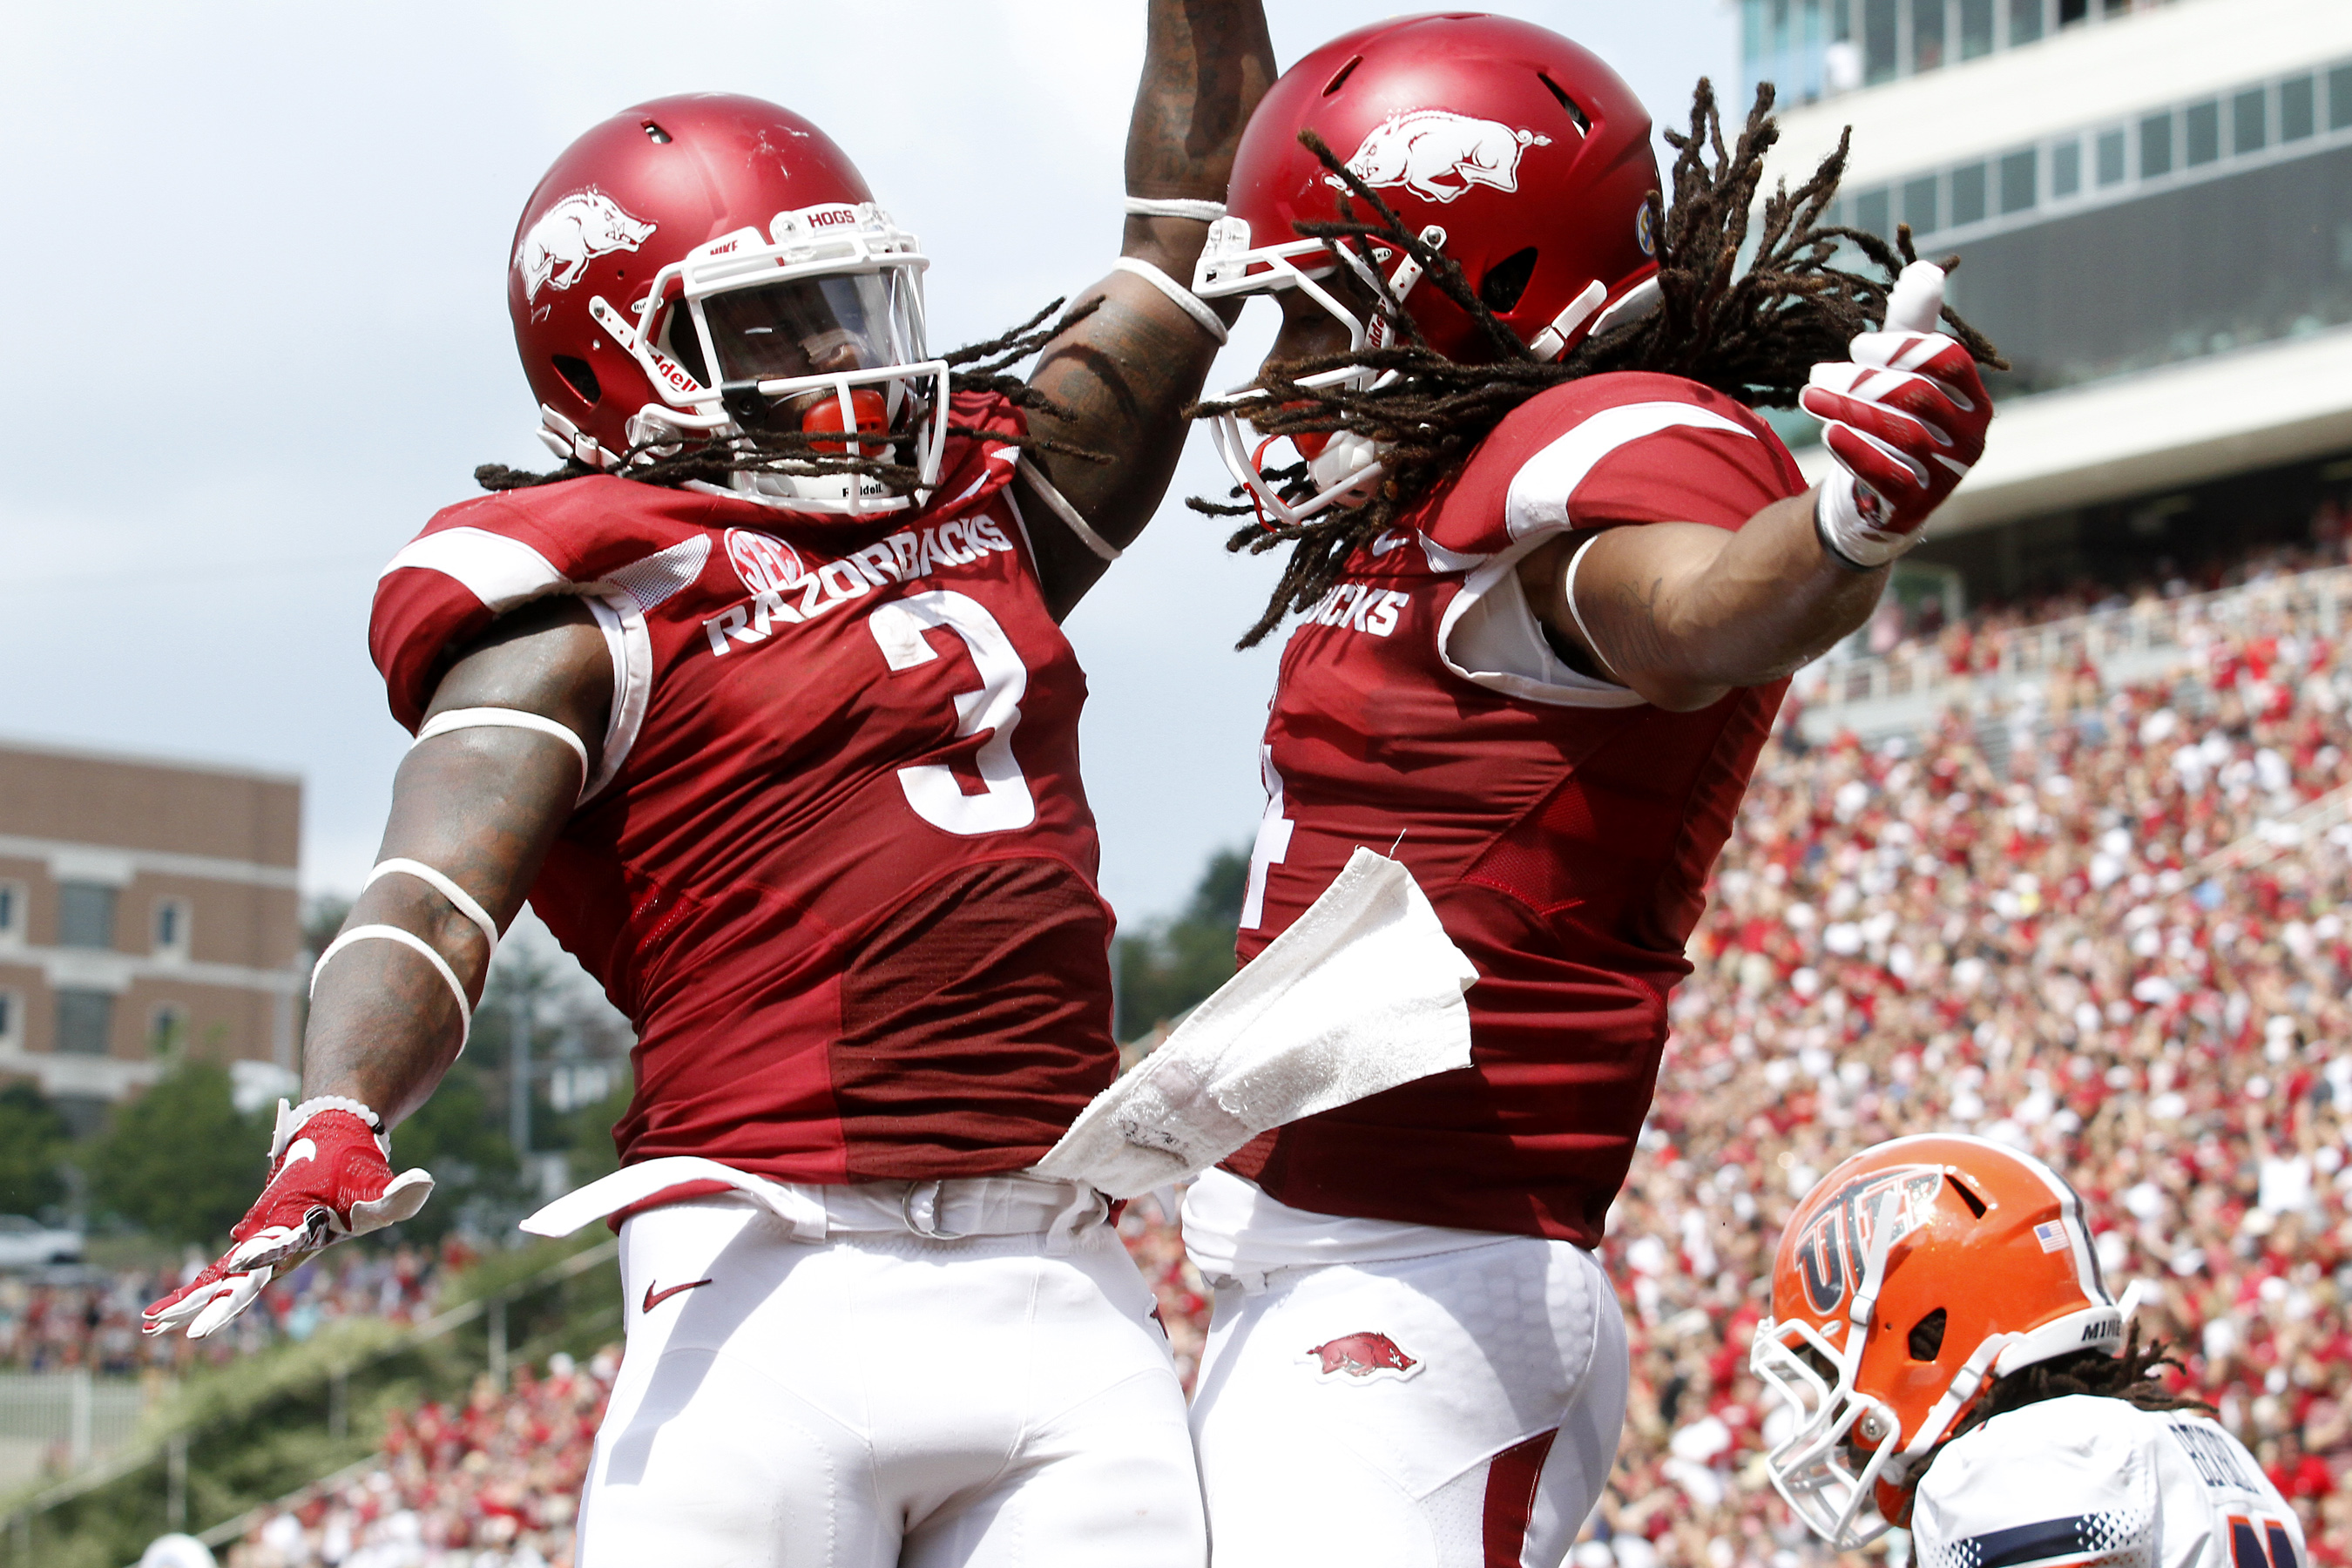 FILE - In this Sept. 5, 2015, file photo, Arkansas' Alex Collins (3) and Keon Hatcher (4) celebrate after Hatcher's touchdown during the NCAA college football game against UTEP at Donald W. Reynolds Razorback Stadium in Fayetteville, Ark. The Razorbacks b